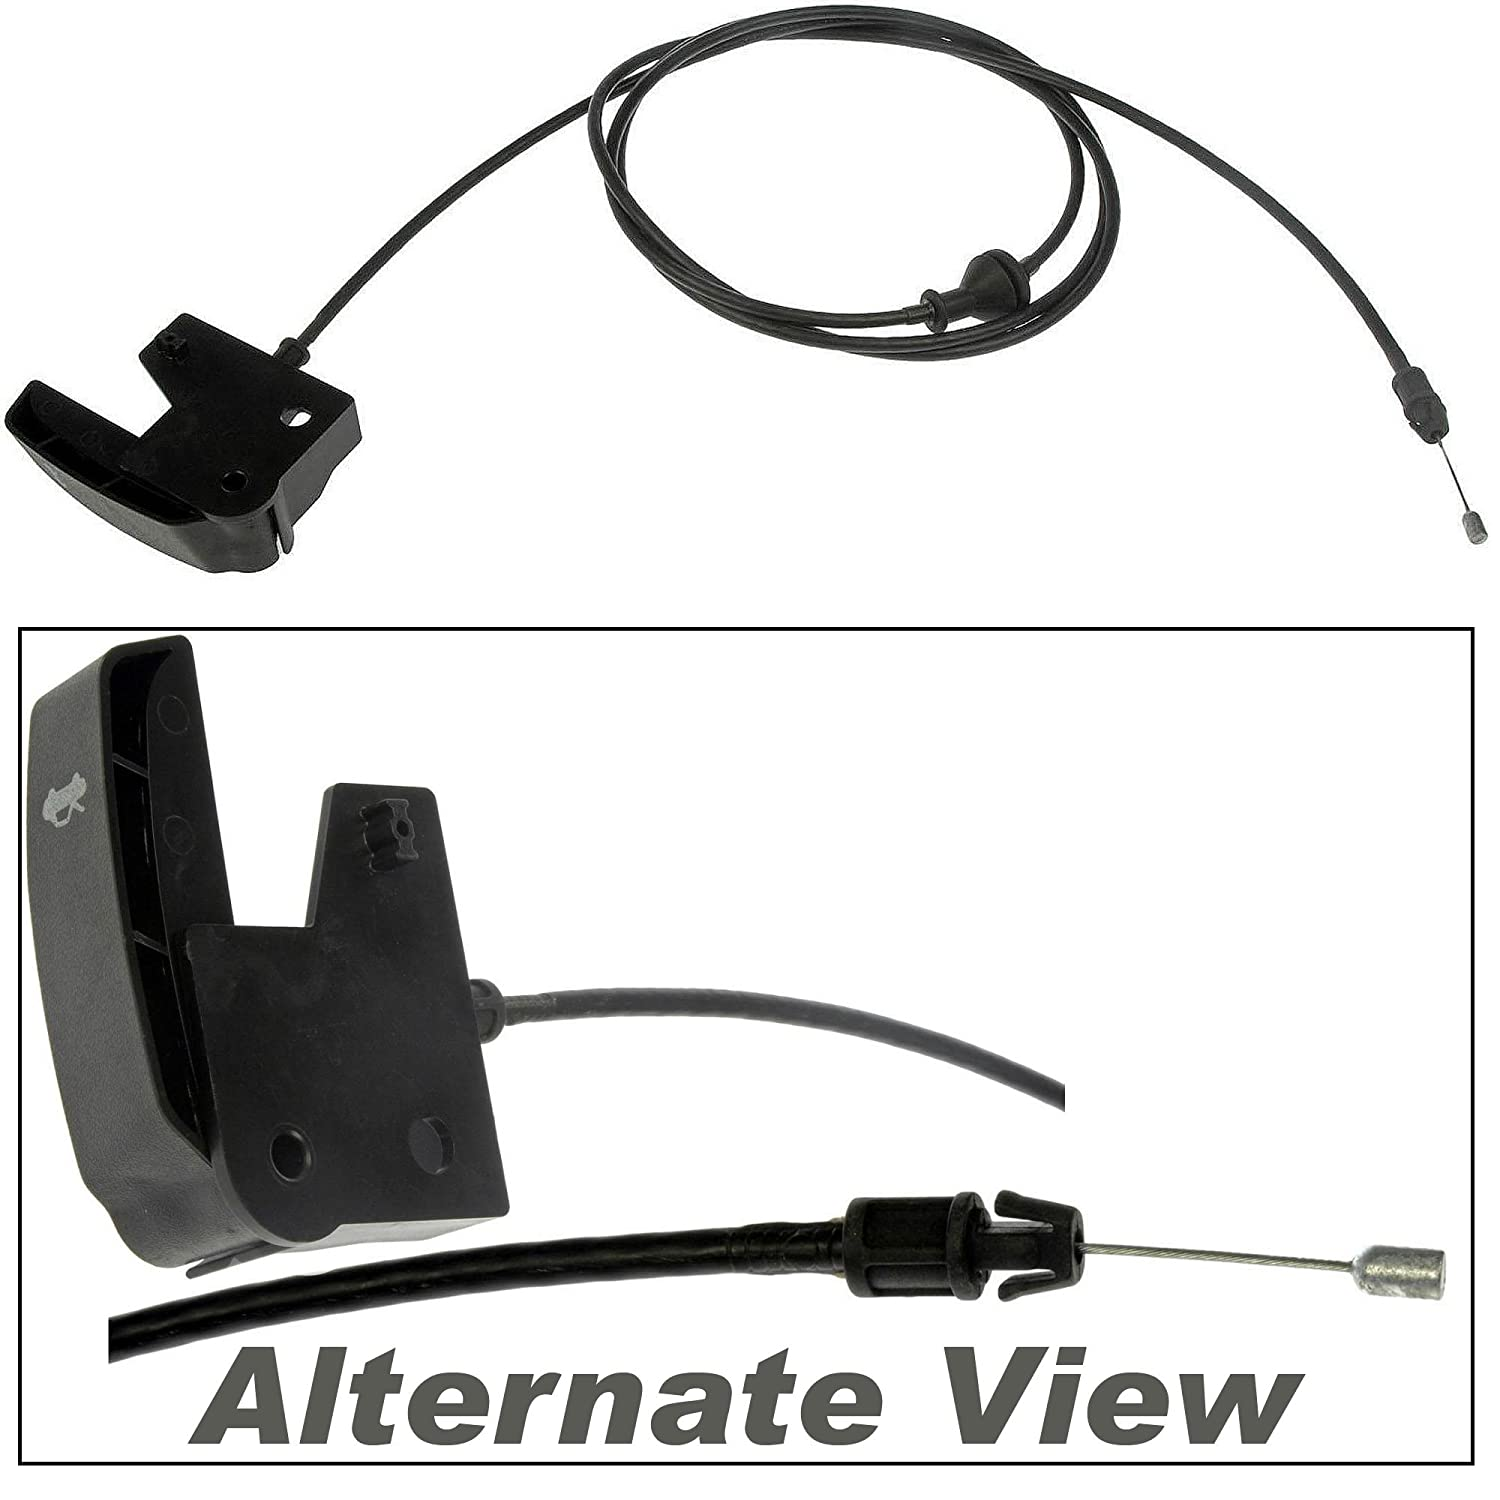 APDTY 023148 Hood Release Cable with Handle For 2004-2007 Buick Rainier / 2004-2006 Chevy SSR / 2002-2009 Chevy Trailblazer / 2002-2009 GMC Envoy / 2003-2008 Isuzu Ascender / 2002-2004 Olds Bravada / 2005-2009 Saab 9-7x (Replaces 21997874)